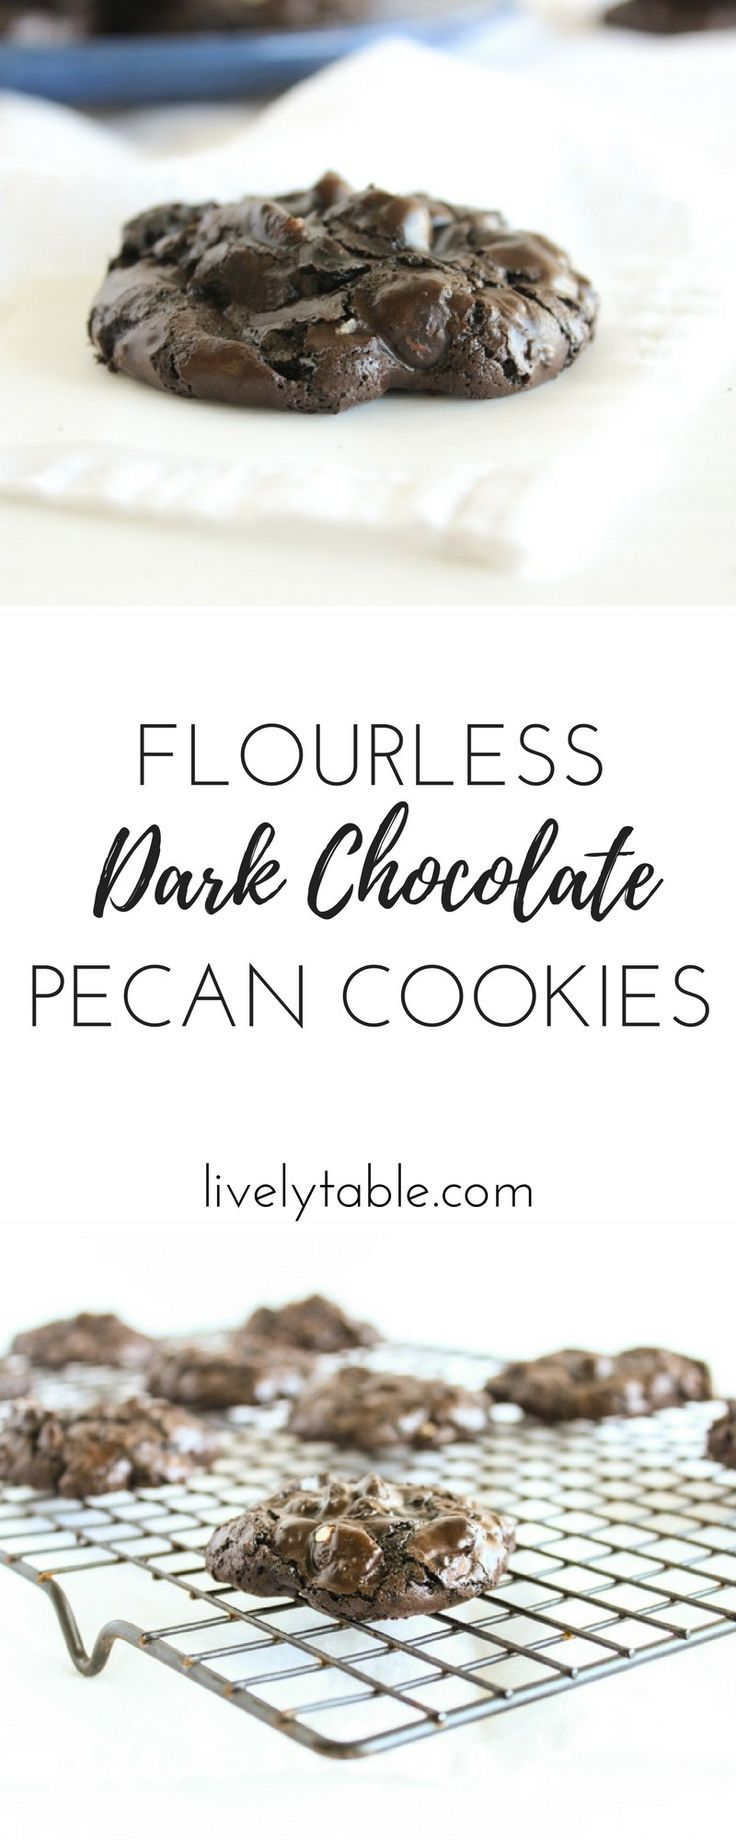 Flourless Chocolate Pecan Cookies | Recipe | Delicious ...